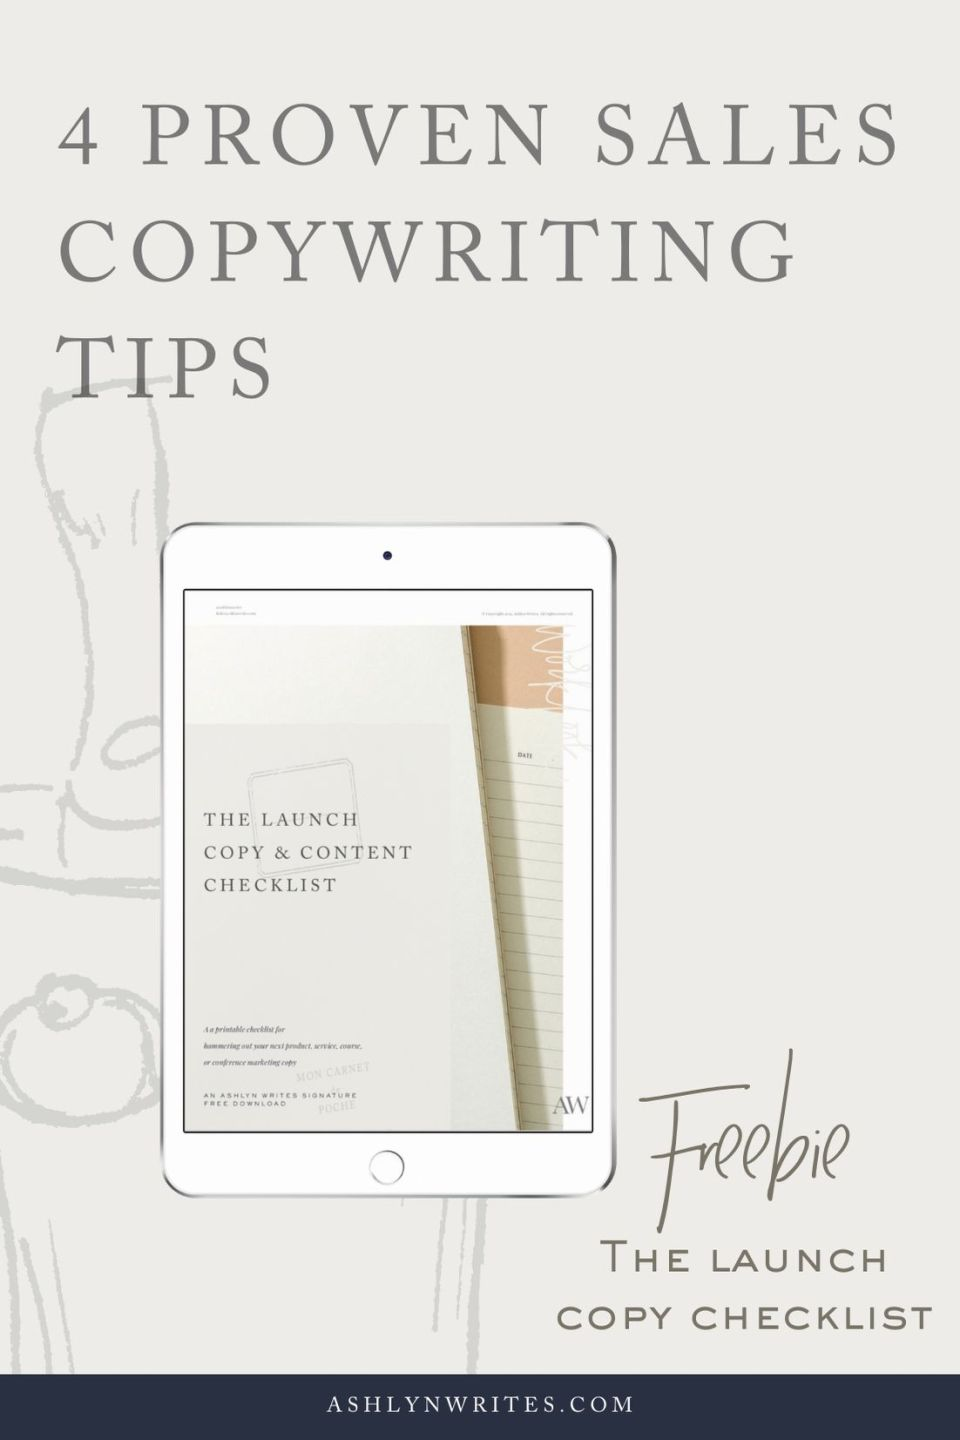 proven-sales-copywriting-tips-from-Ashlyn-Writes